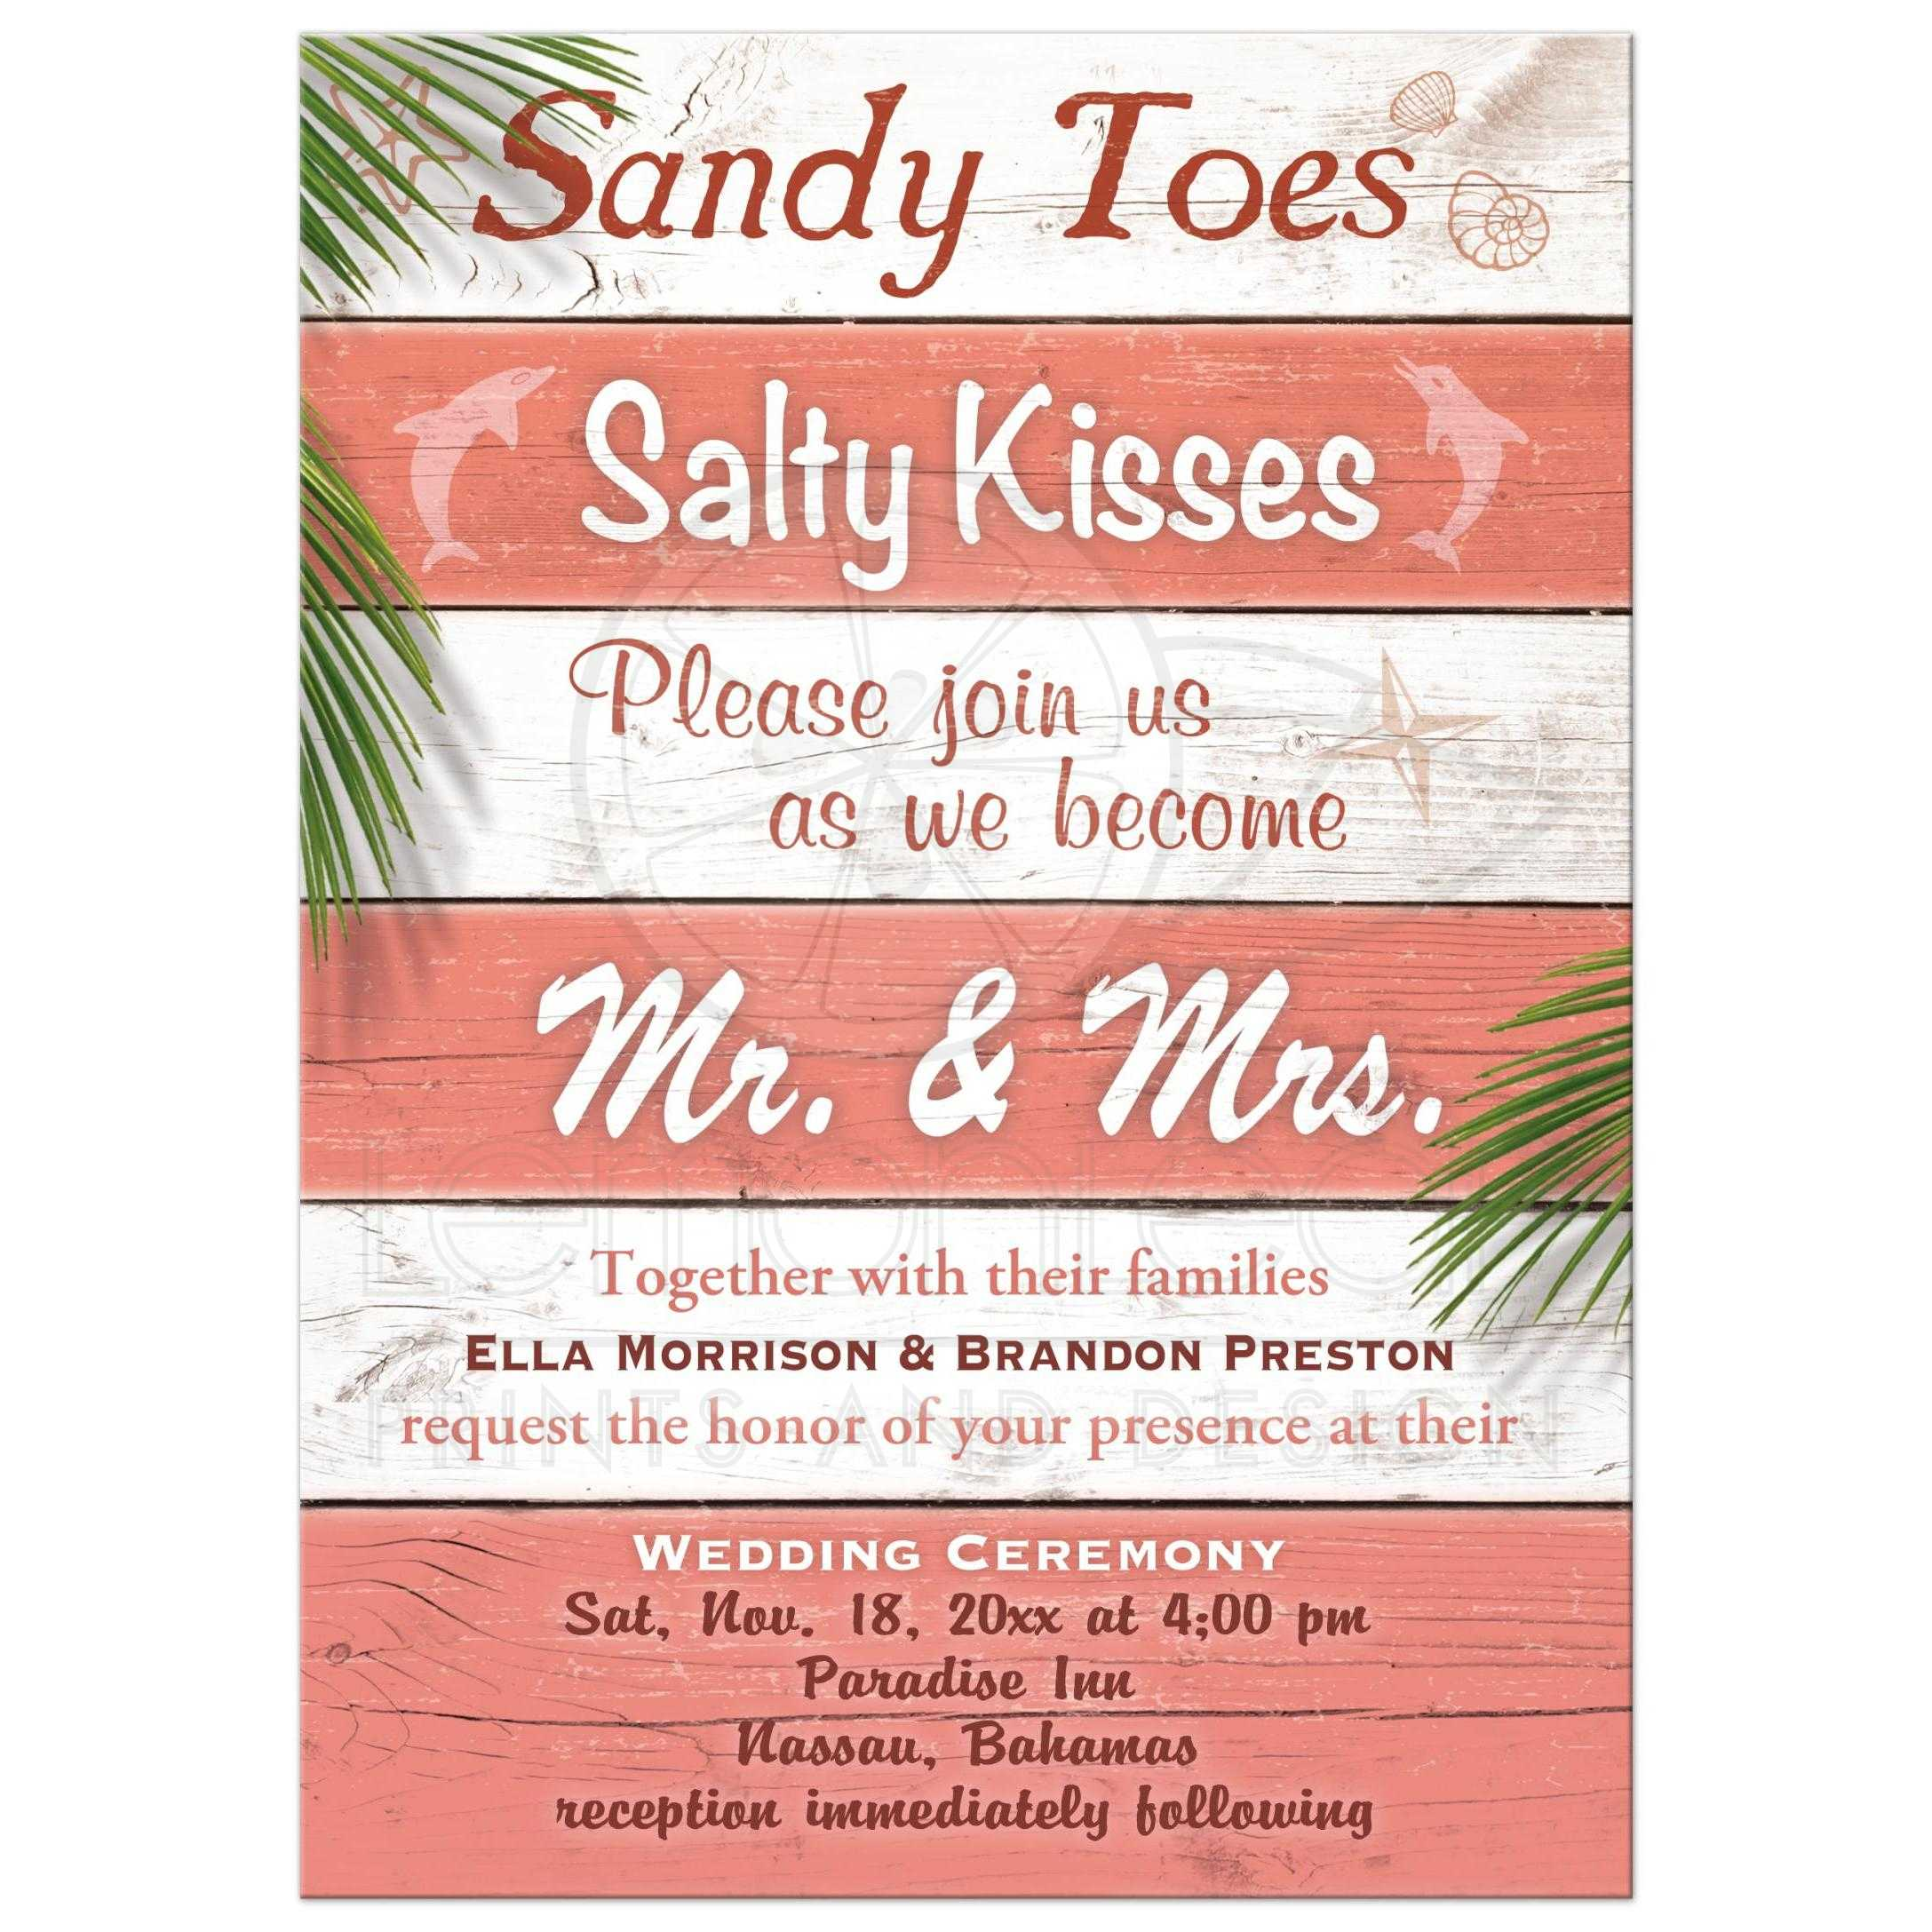 wedding invitation coral beach sandy toes salty kisses